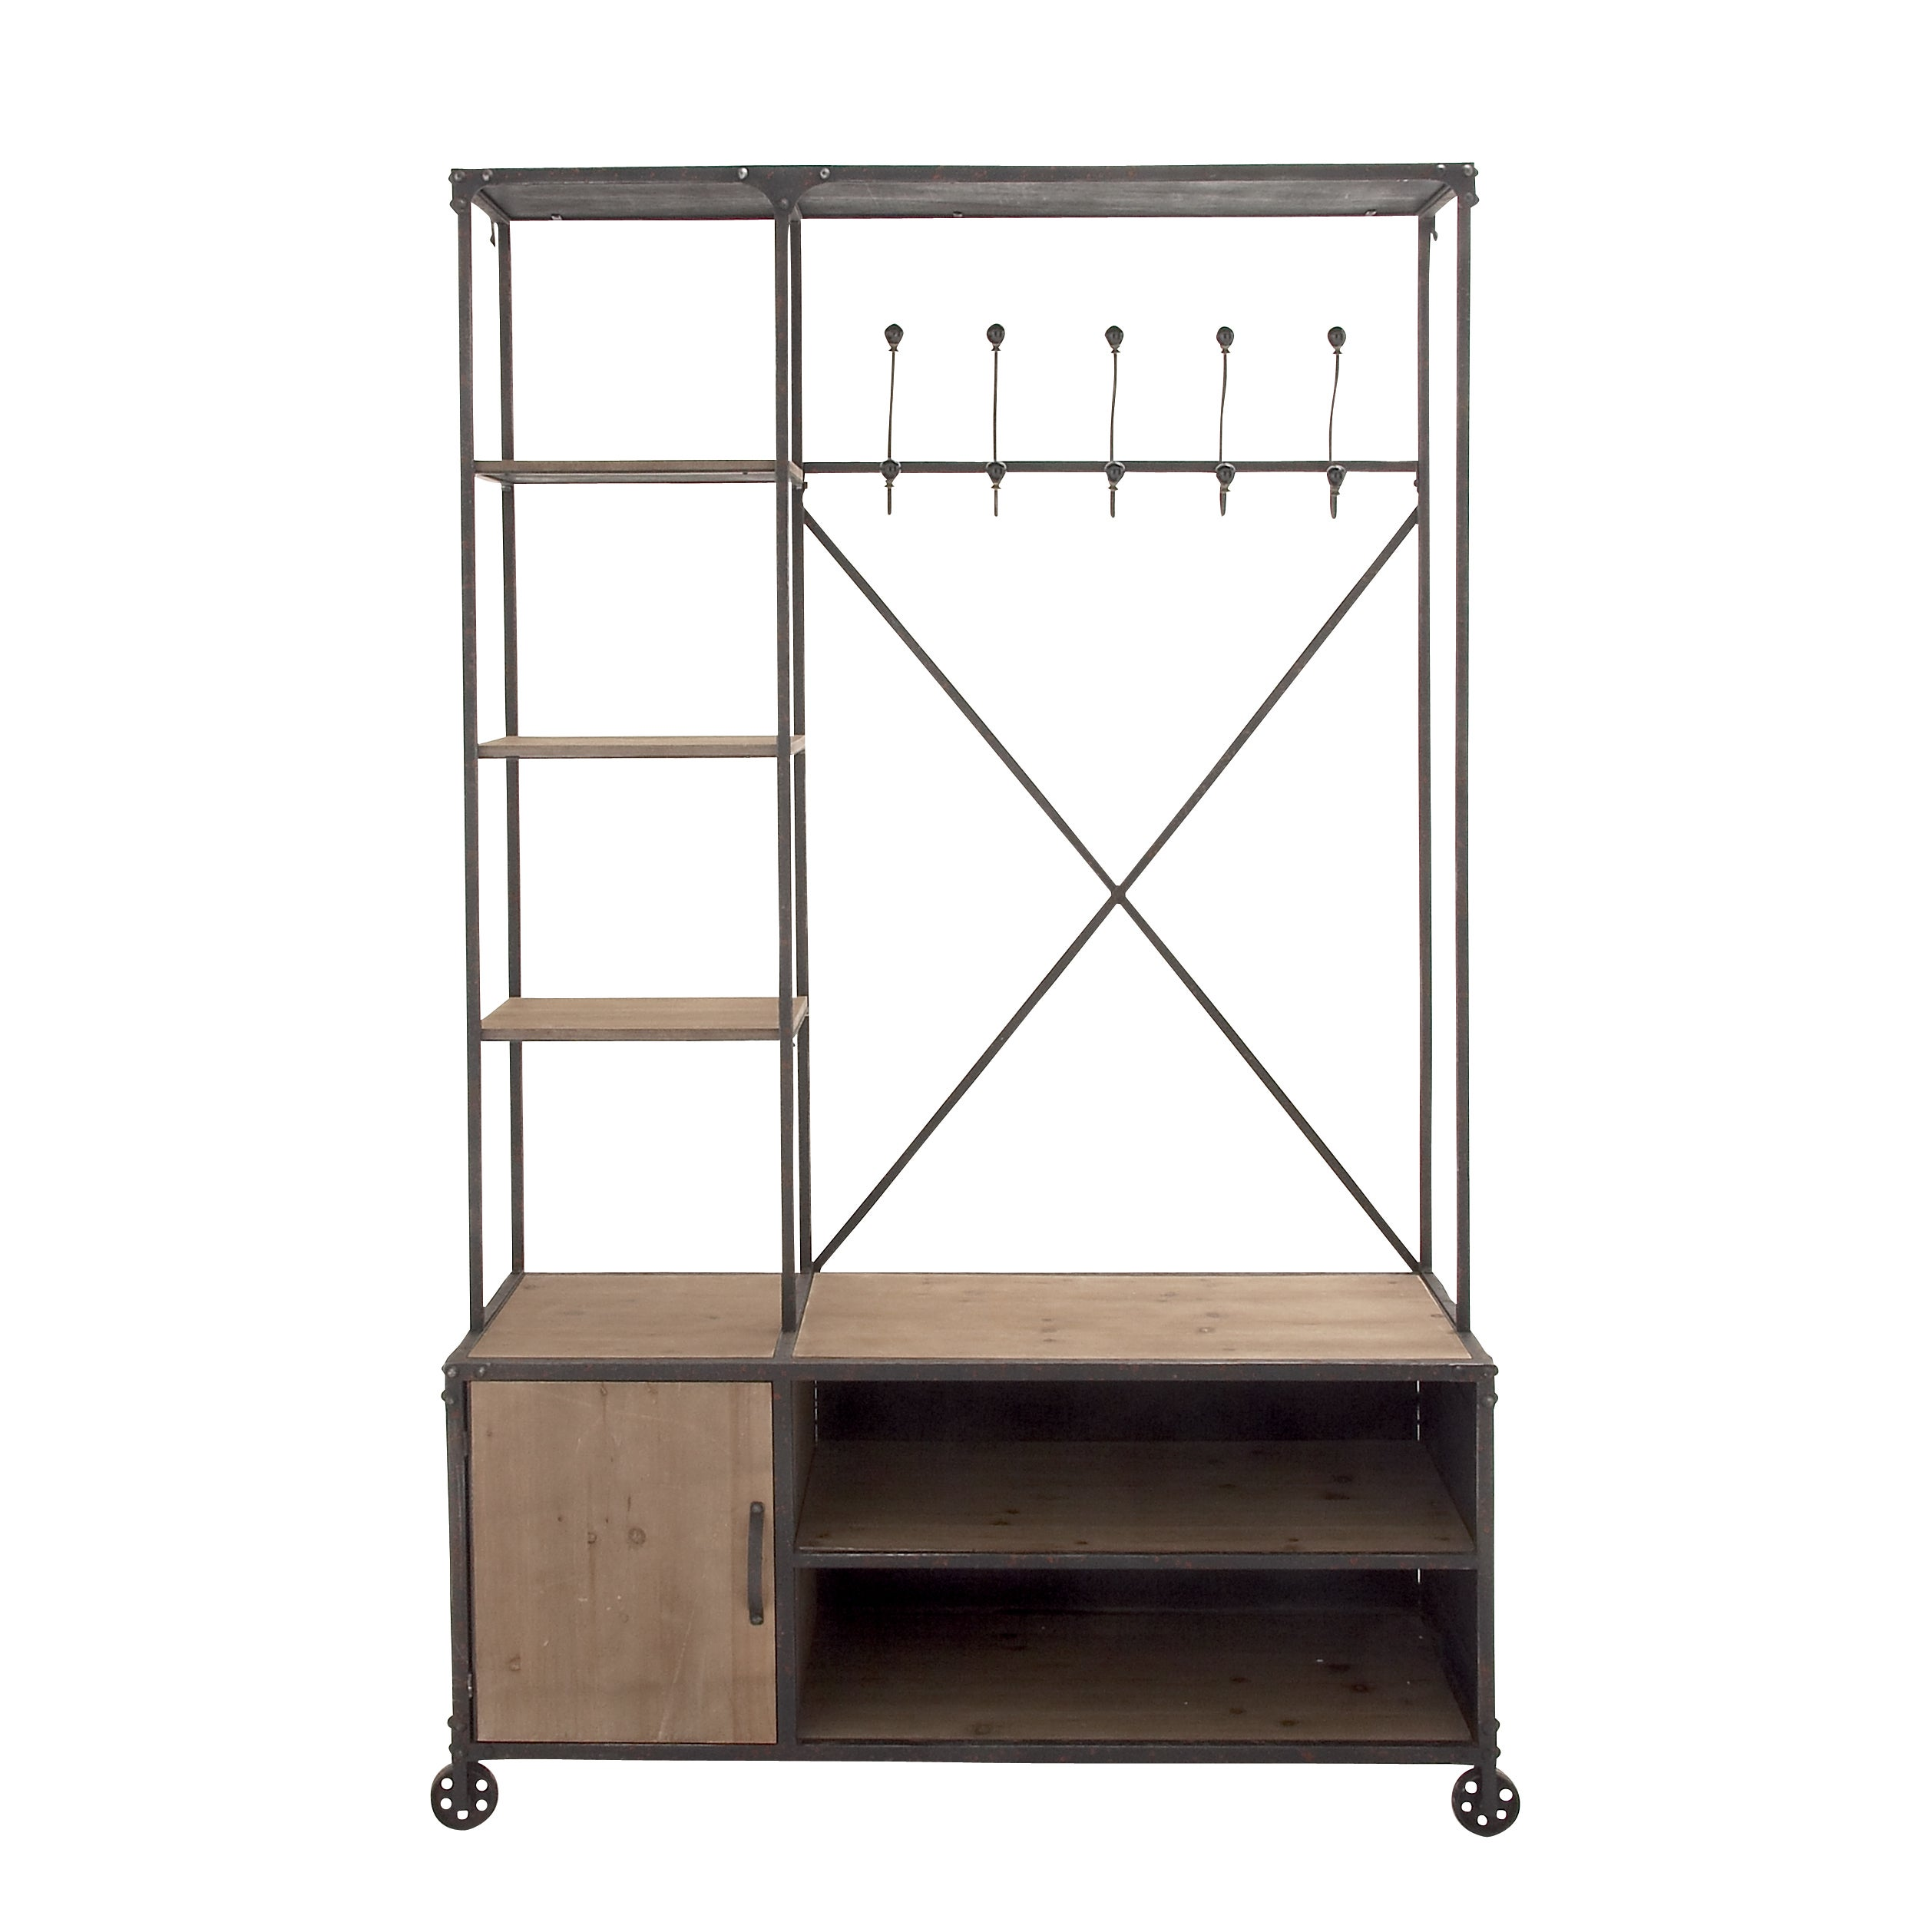 rack shelf black benches stand bench coat with corner and of tidy metal small for shoe clothes hallway door boot foyer wall tree size entrance storage photos hall furniture archaicawful entryway full pinnig ideas front ikea seat seating mirror